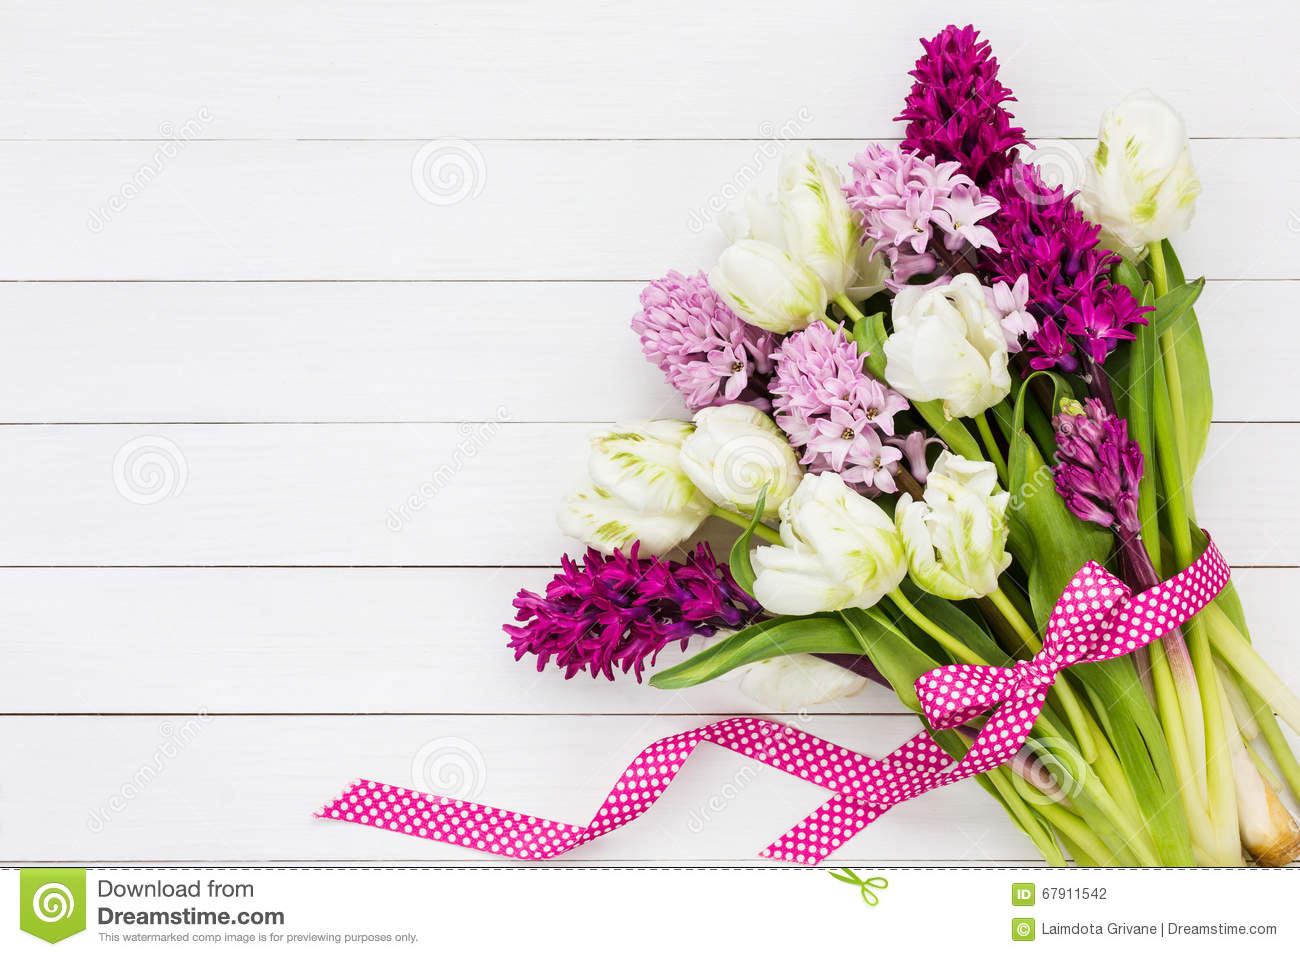 Bouquet of white tulips and pink hyacinth flowers copy space bouquet flowers hyacinth dhlflorist Choice Image